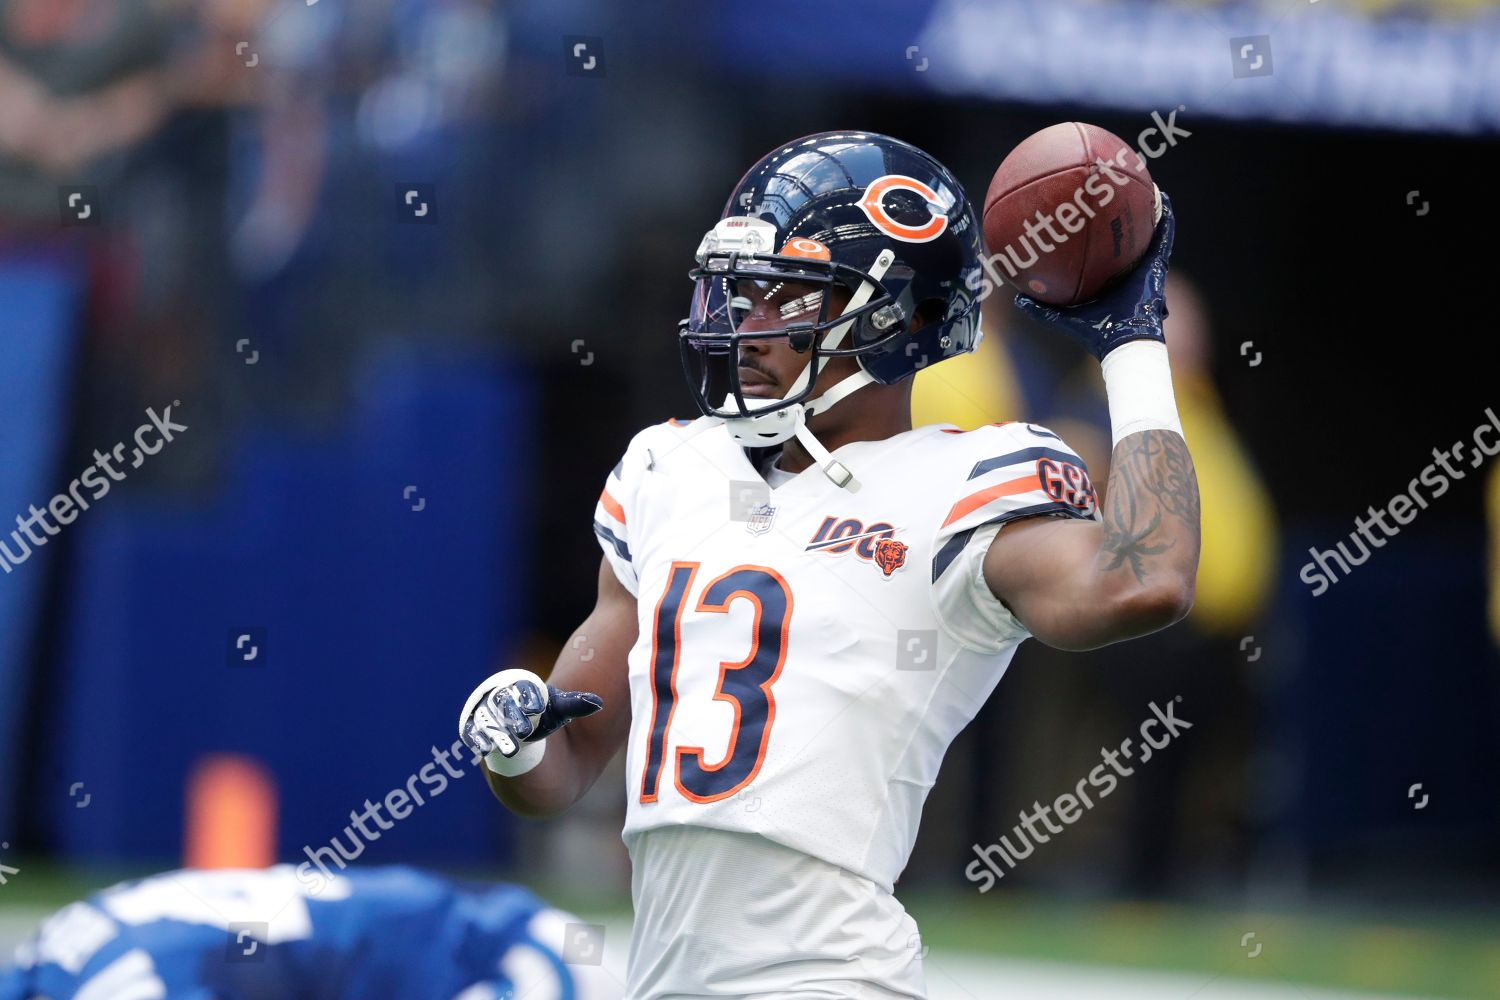 new arrival 6d790 2f48b Chicago Bears wide receiver Marvin Hall 13 Editorial Stock ...